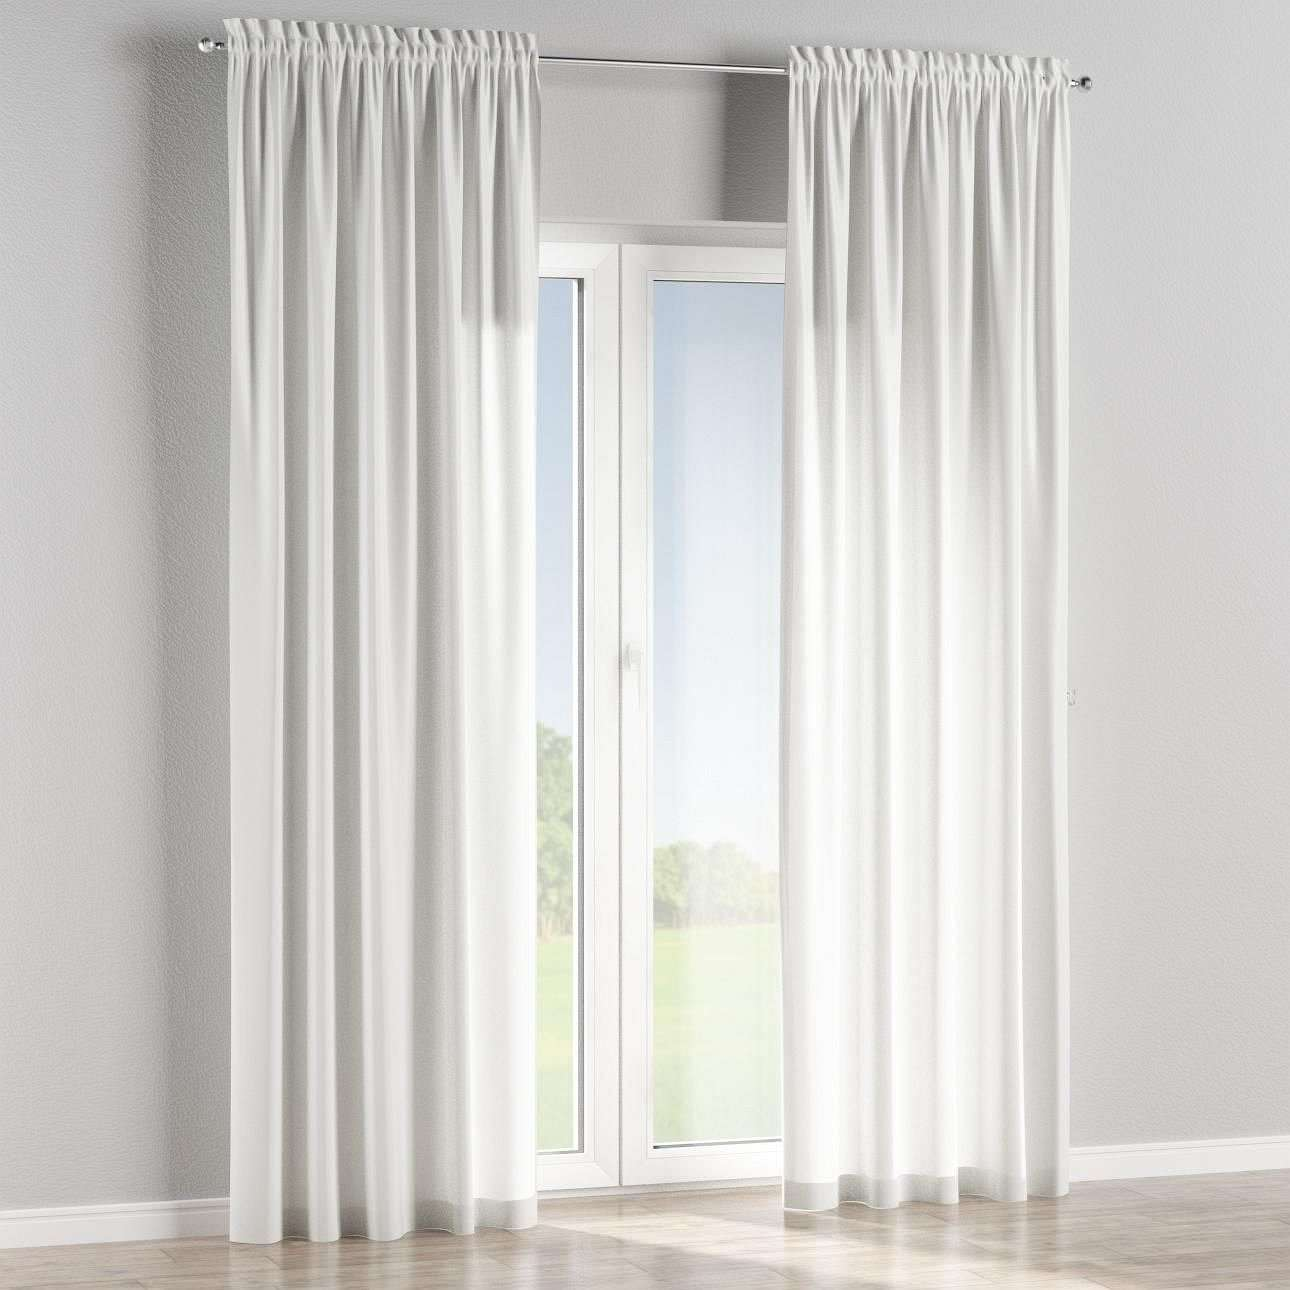 Slot and frill lined curtains in collection Rustica, fabric: 138-16